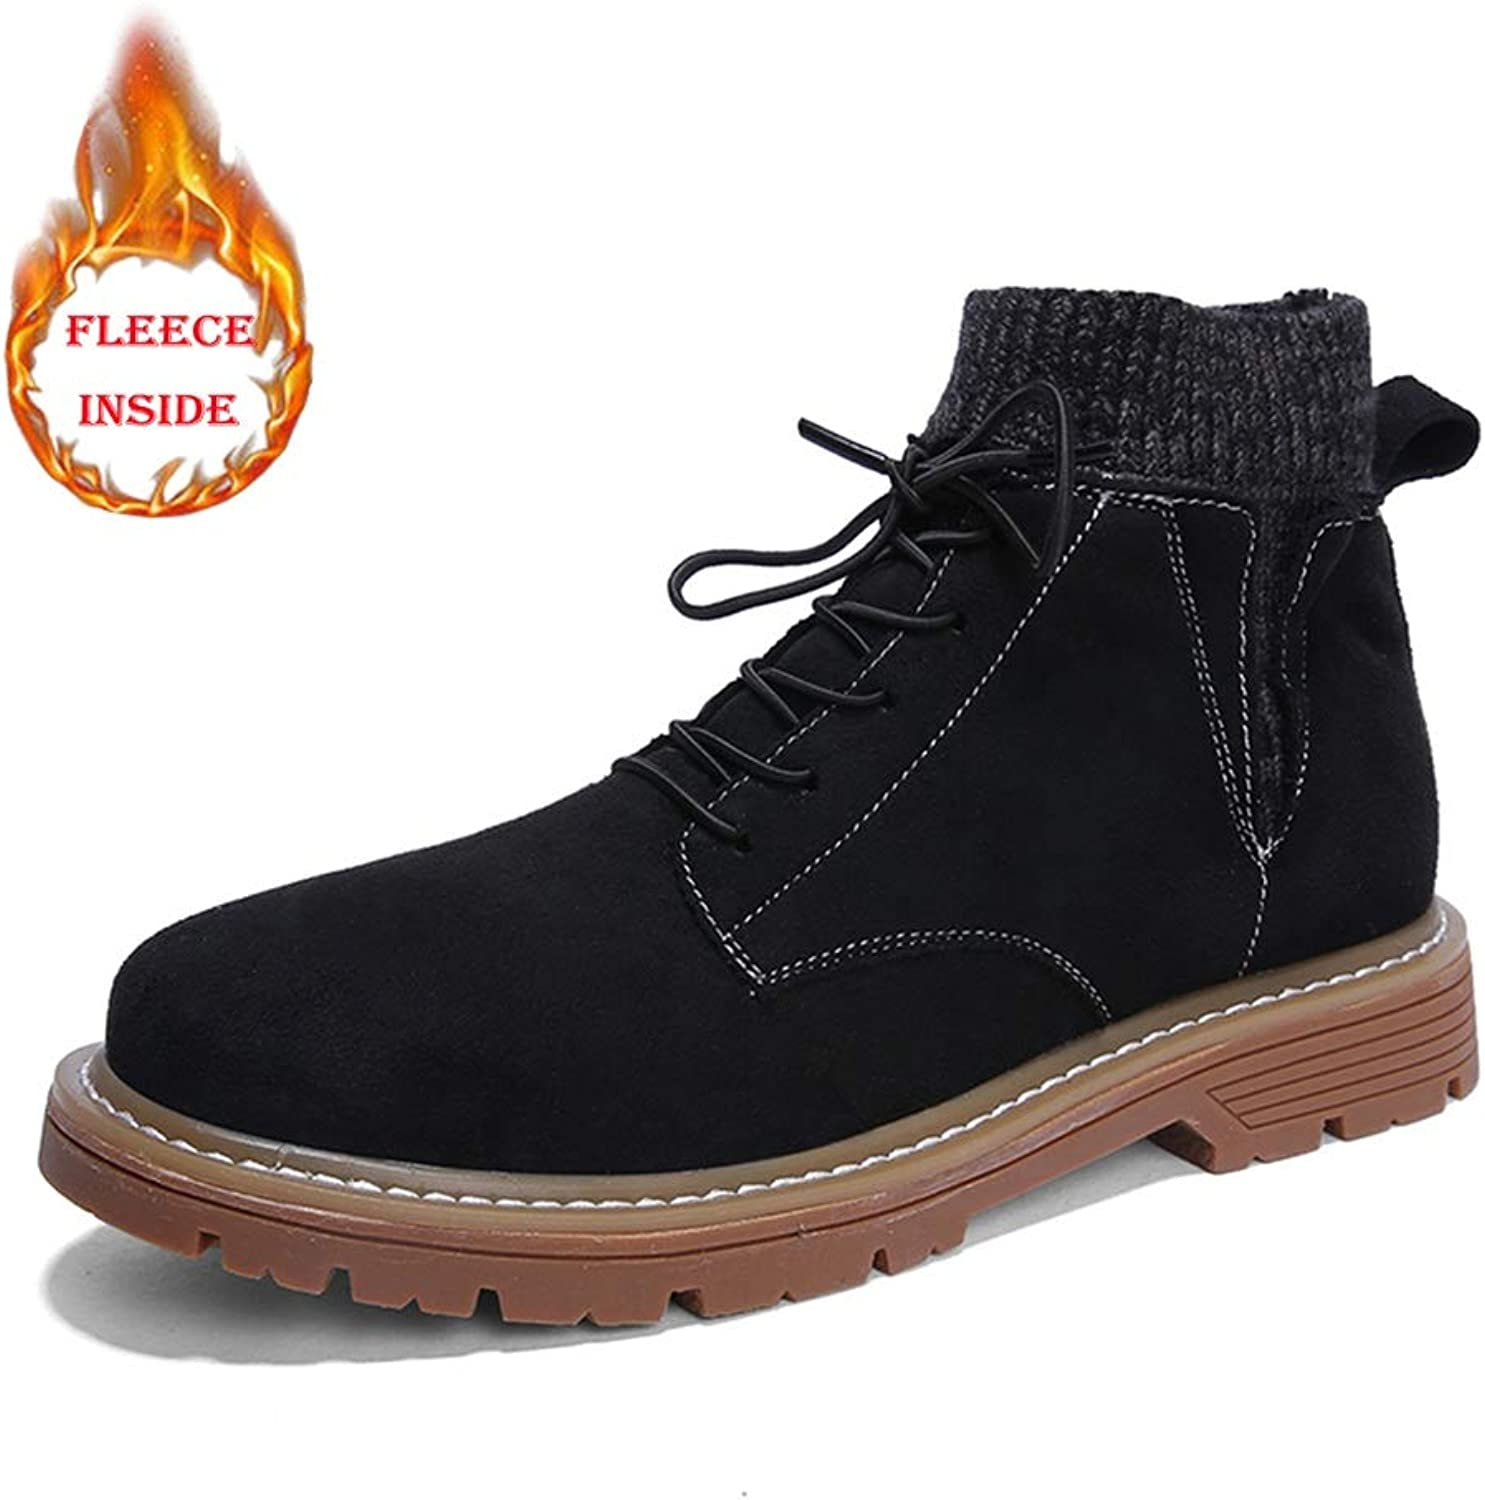 BND-SHOES ,Men's Fashion Ankle Work Boot Casual Solid color Lacing Up Winter Faux Fleece Inside High Top Boot(Conventional Optional) Durable,Stand Wear and Tear (color   Warm Black, Size   8.5 UK)